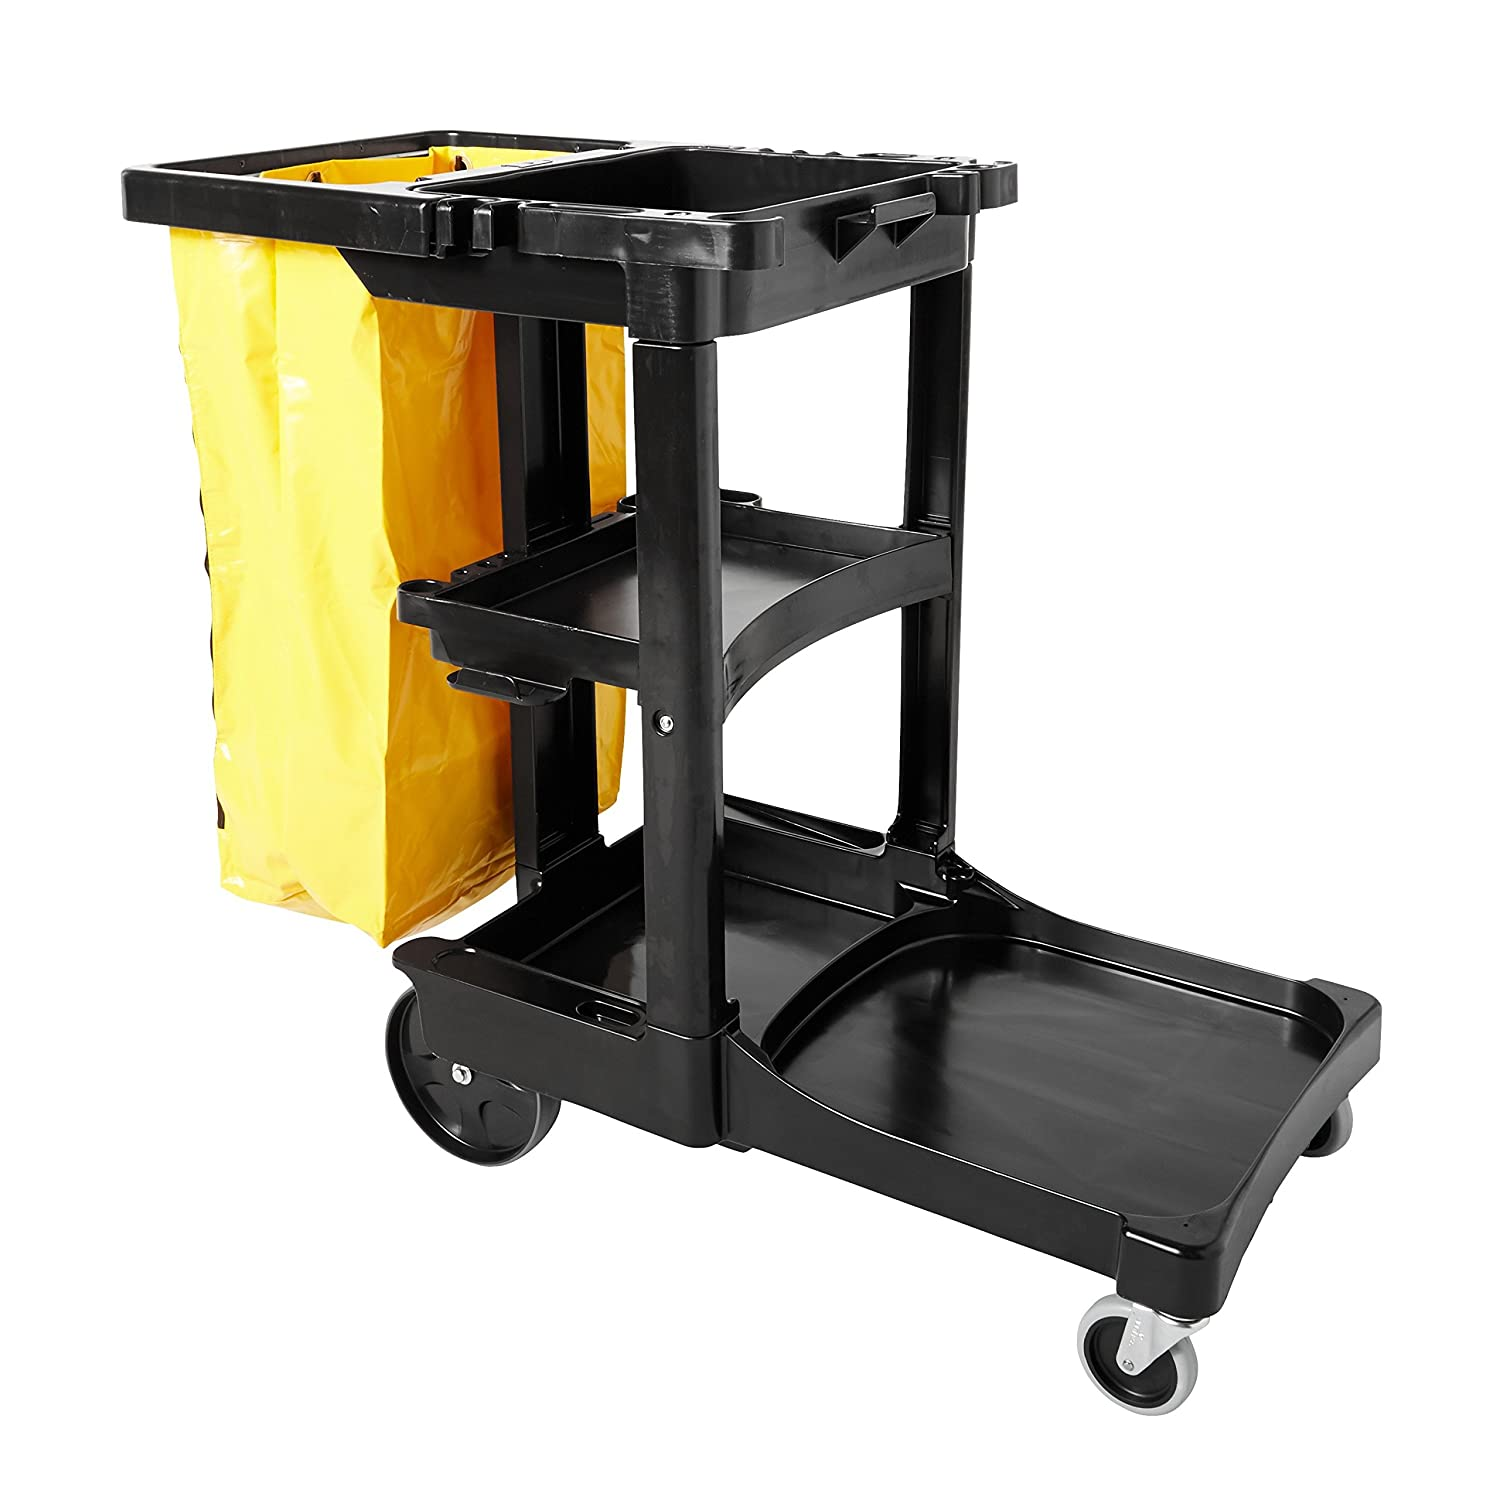 Rubbermaid Commercial Housekeeping 3-Shelf Cart with Zippered Yellow Vinyl  Bag, Black, FG617388BLA: Utility Carts: Amazon.com: Industrial & Scientific